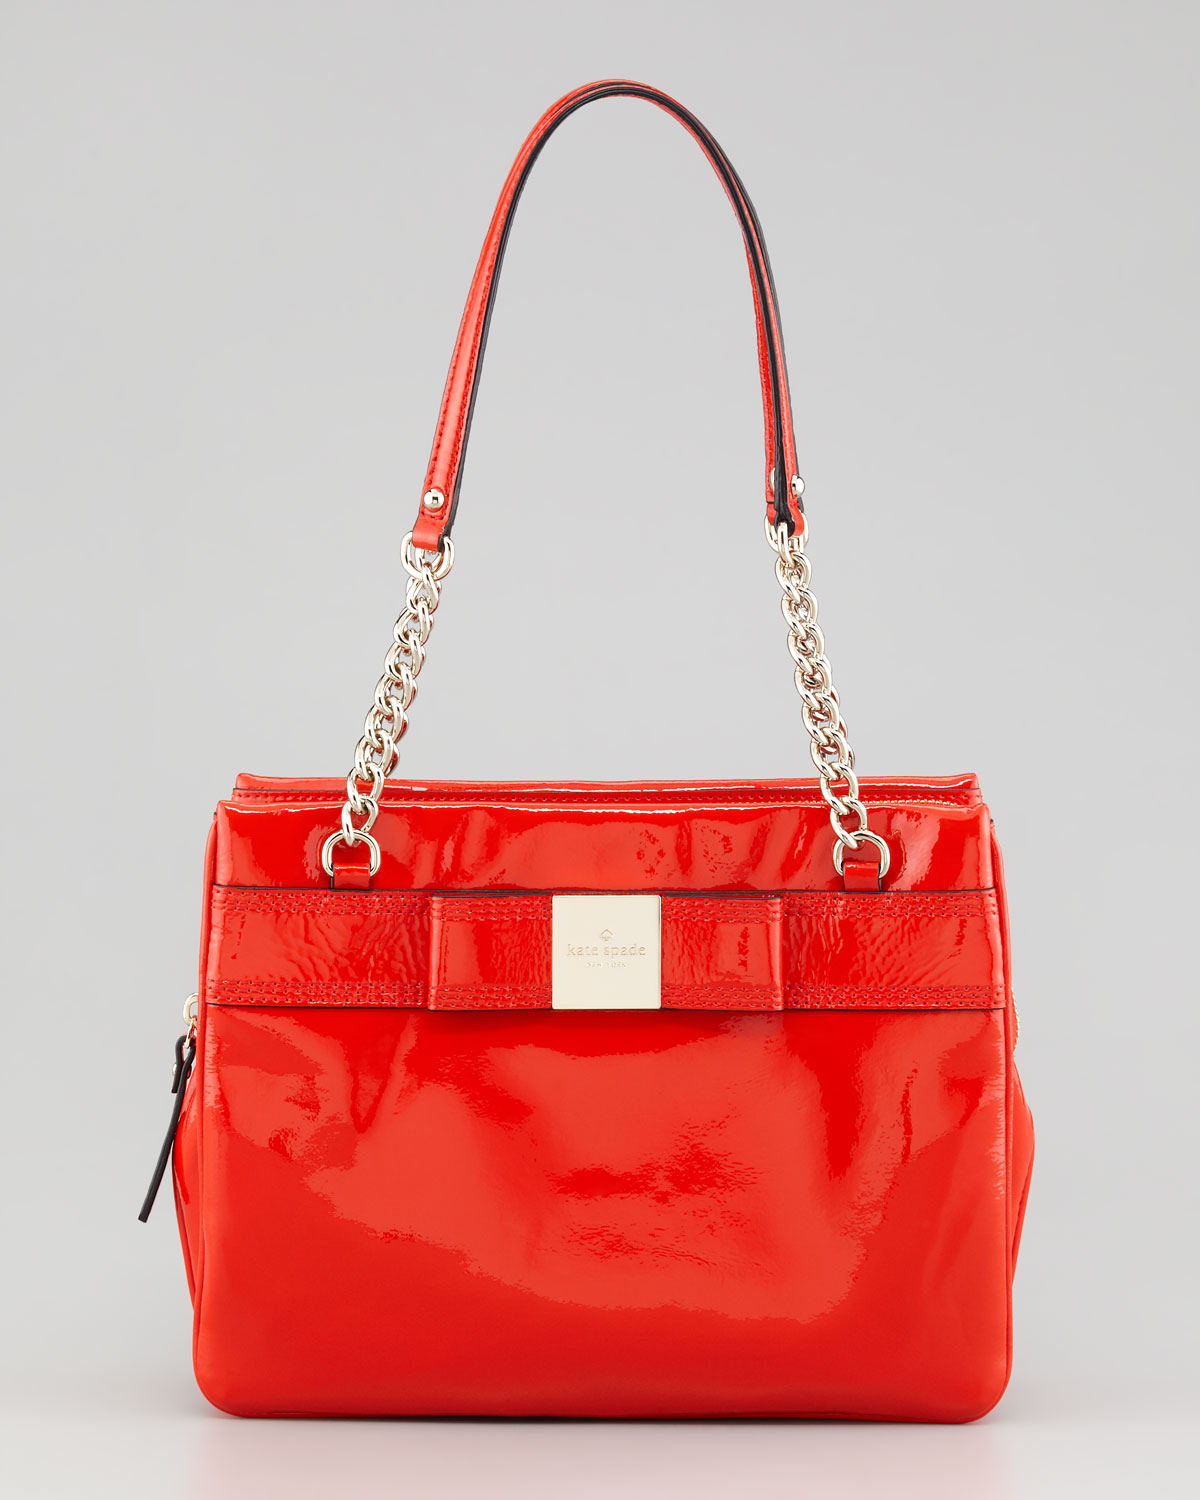 Kate Spade New York Primrose Hill Patent Leather Shoulder Bag 63